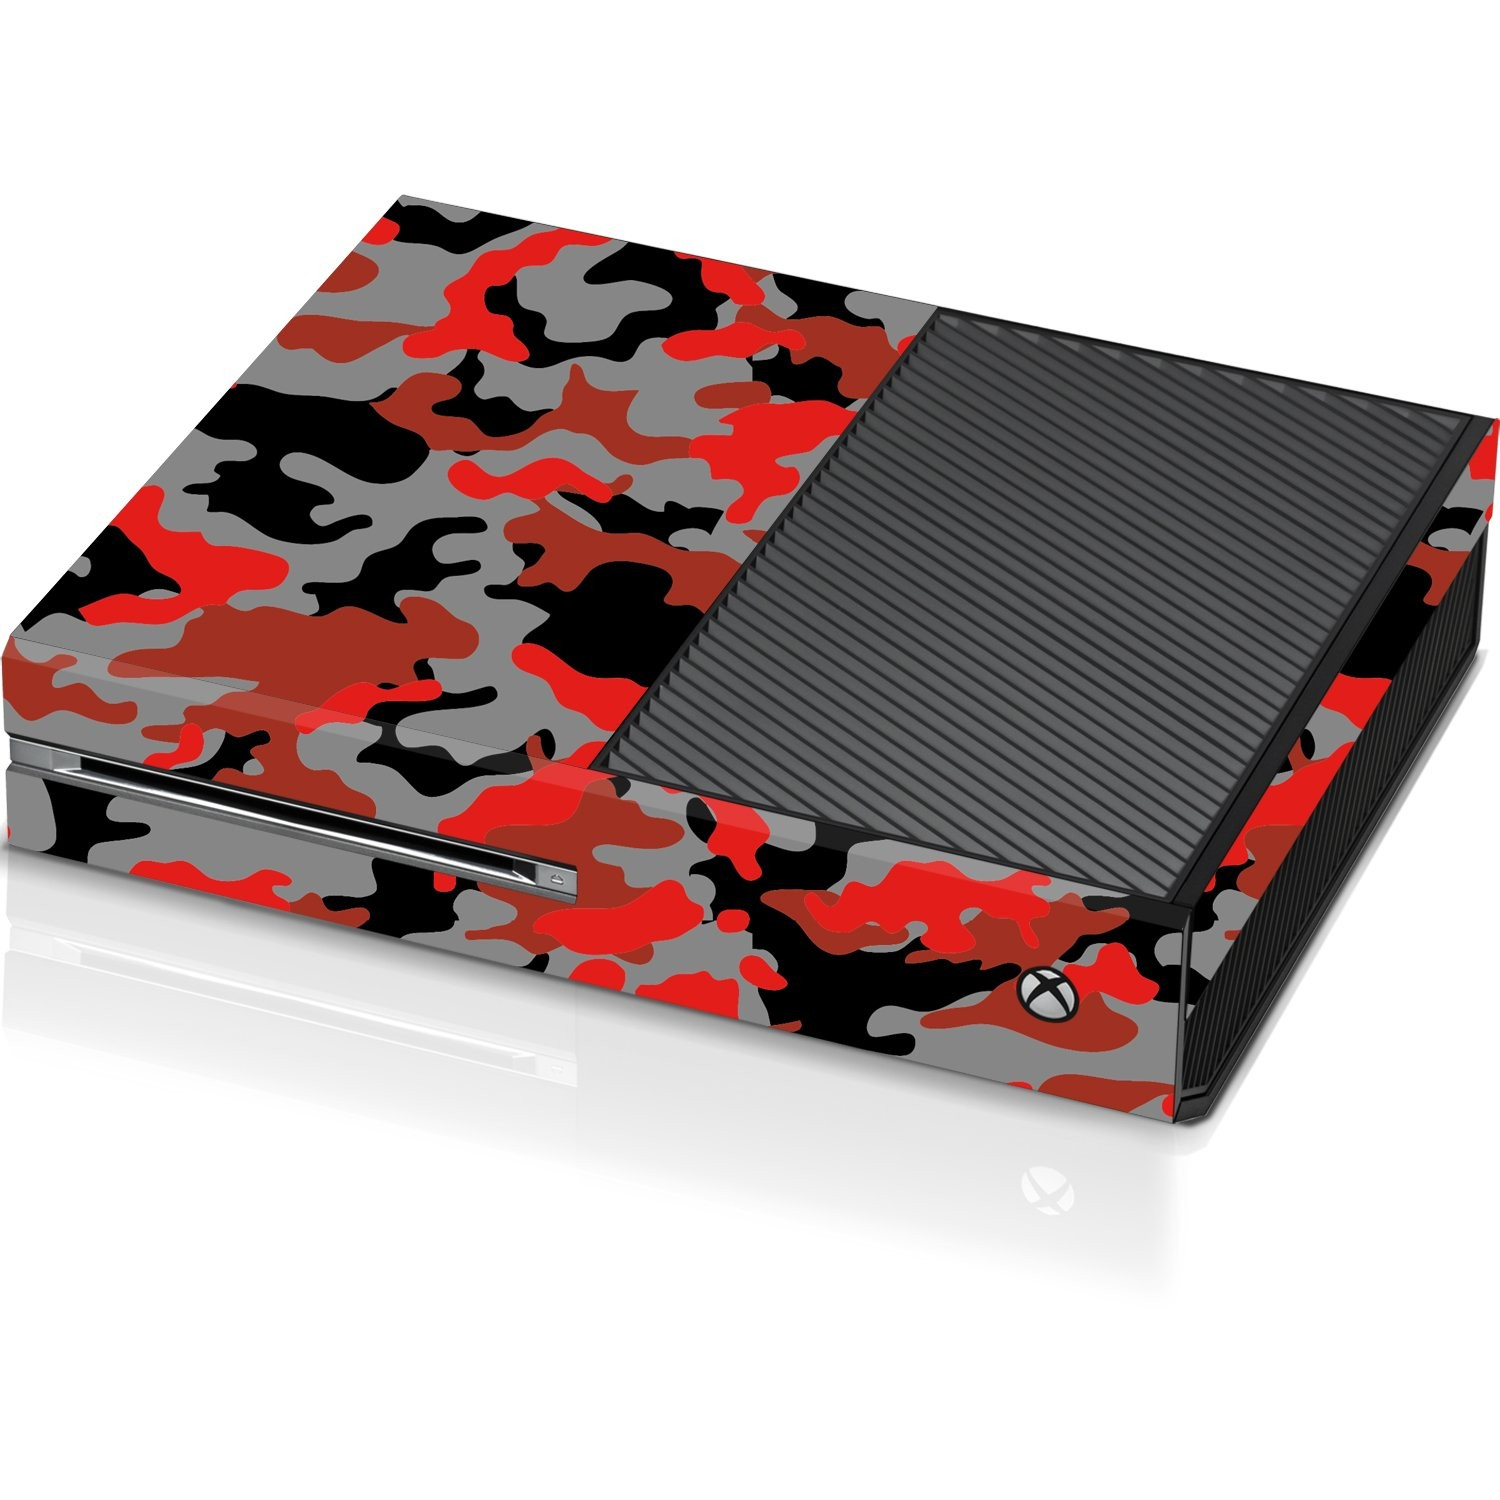 Xbox One Console Skin - Ox Blood Camo - Officially Licensed by Xbox